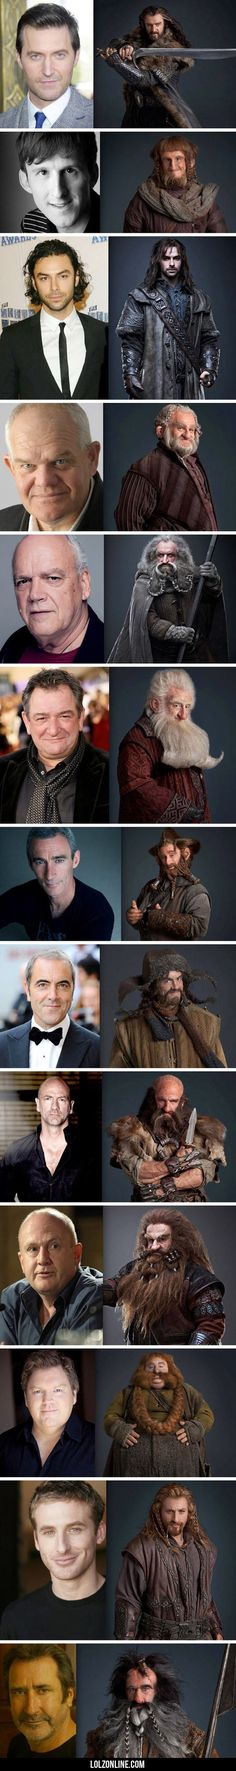 The Hobbit dwarves, pre and post make-up…